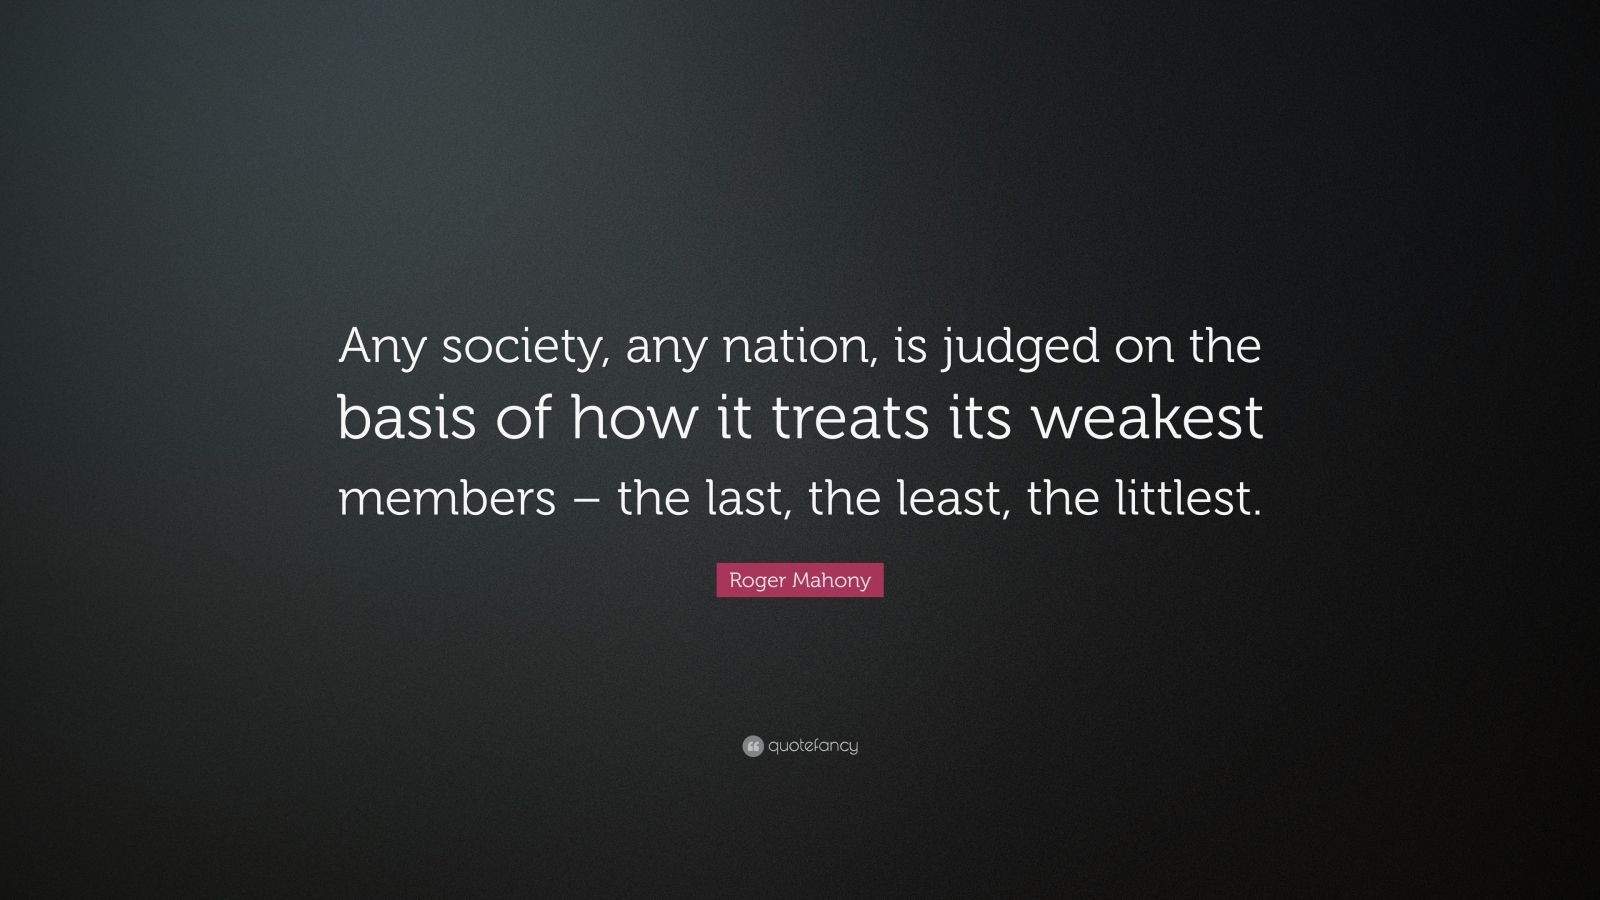 """Roger Mahony Quote: """"Any society, any nation, is judged on the basis of how it treats its weakest members – the last, the least, the littlest."""""""